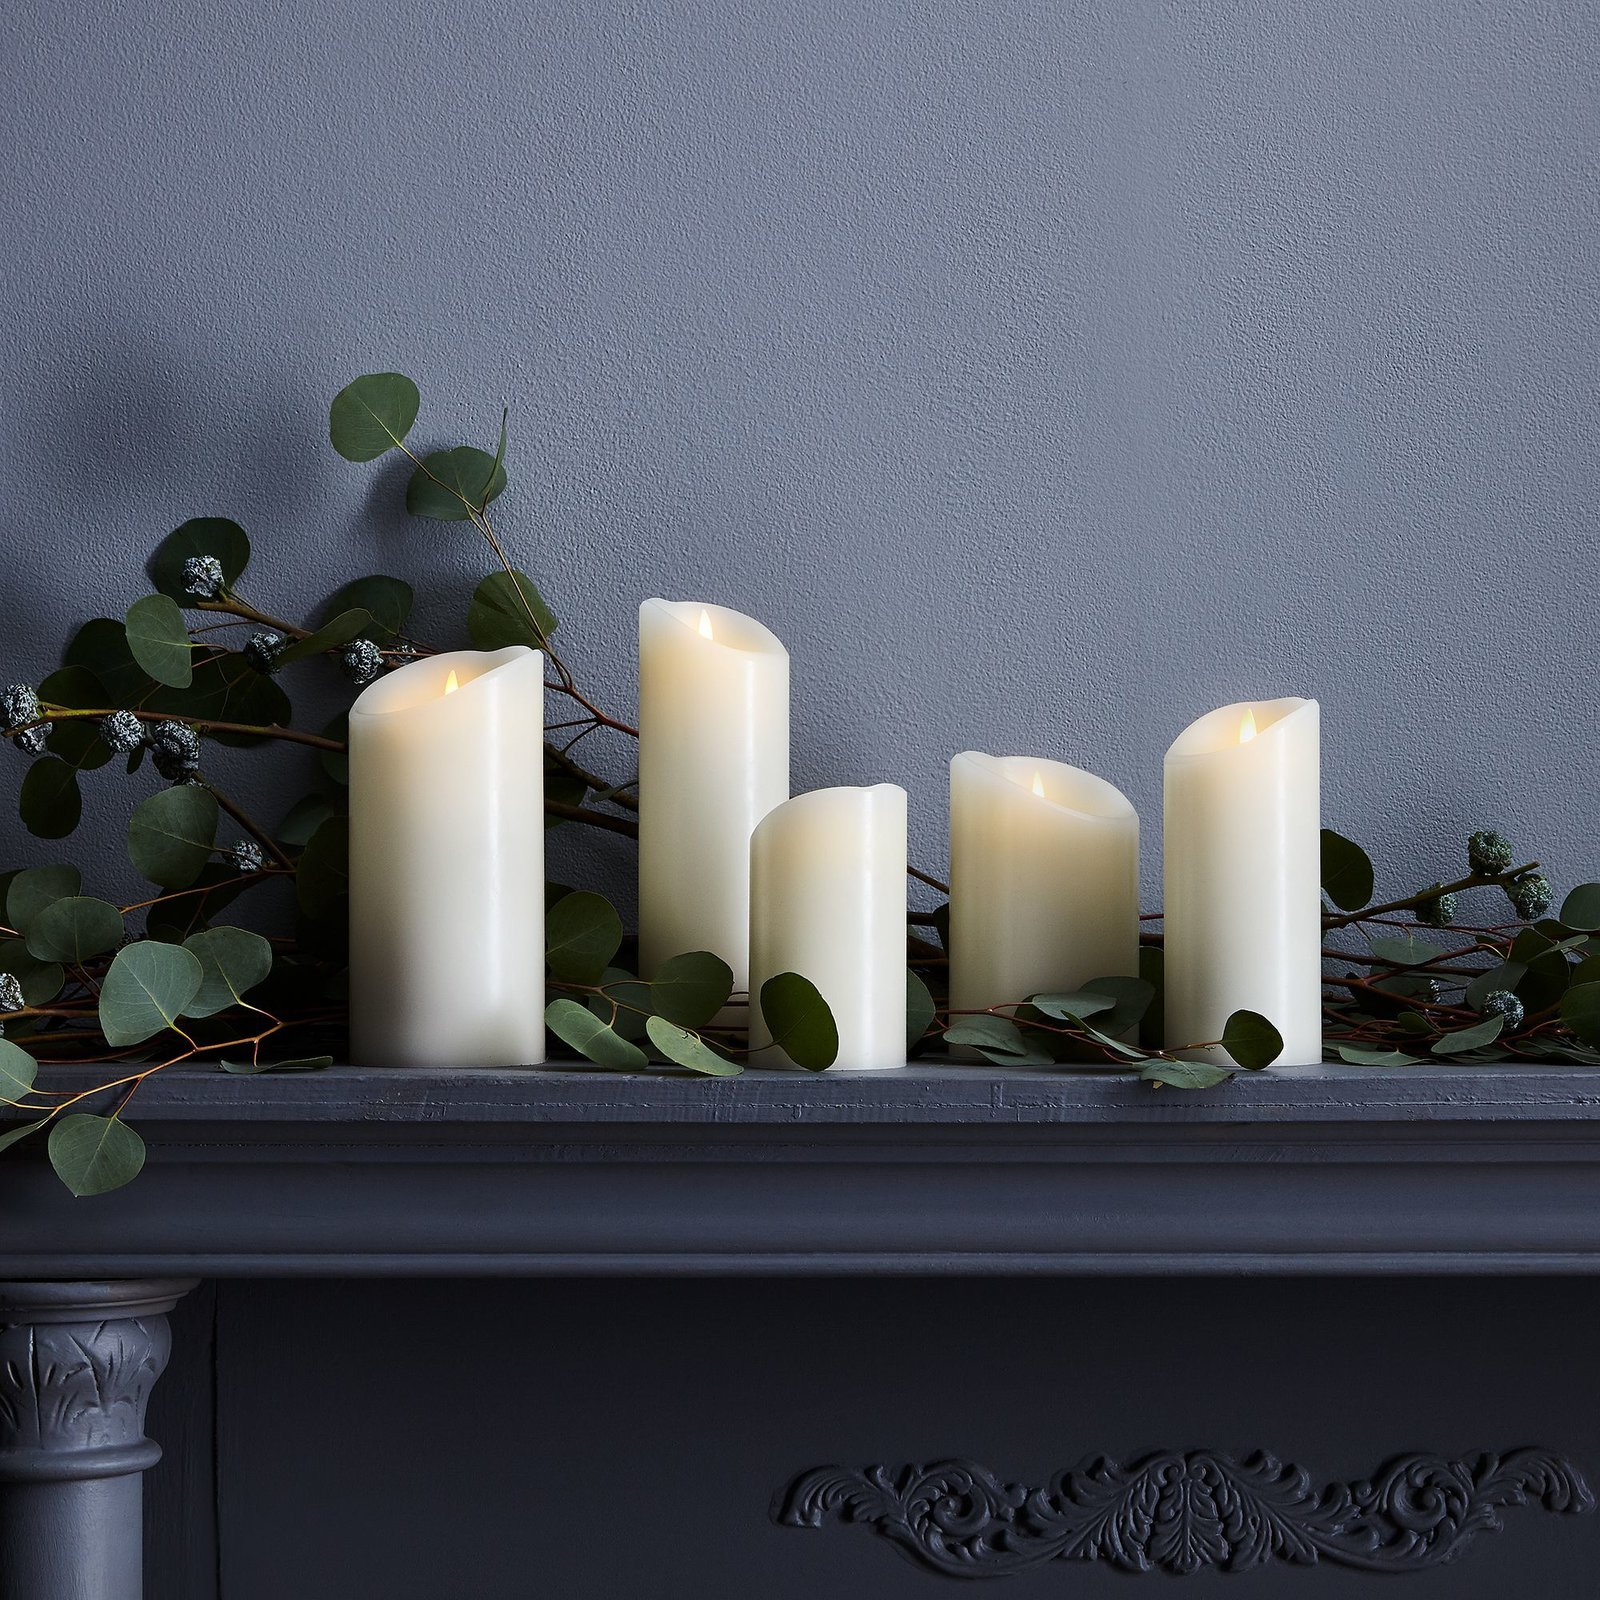 Photo 1 of 1 in 31 Frightfully Festive Ways to Channel Halloween Spirit in Your Home